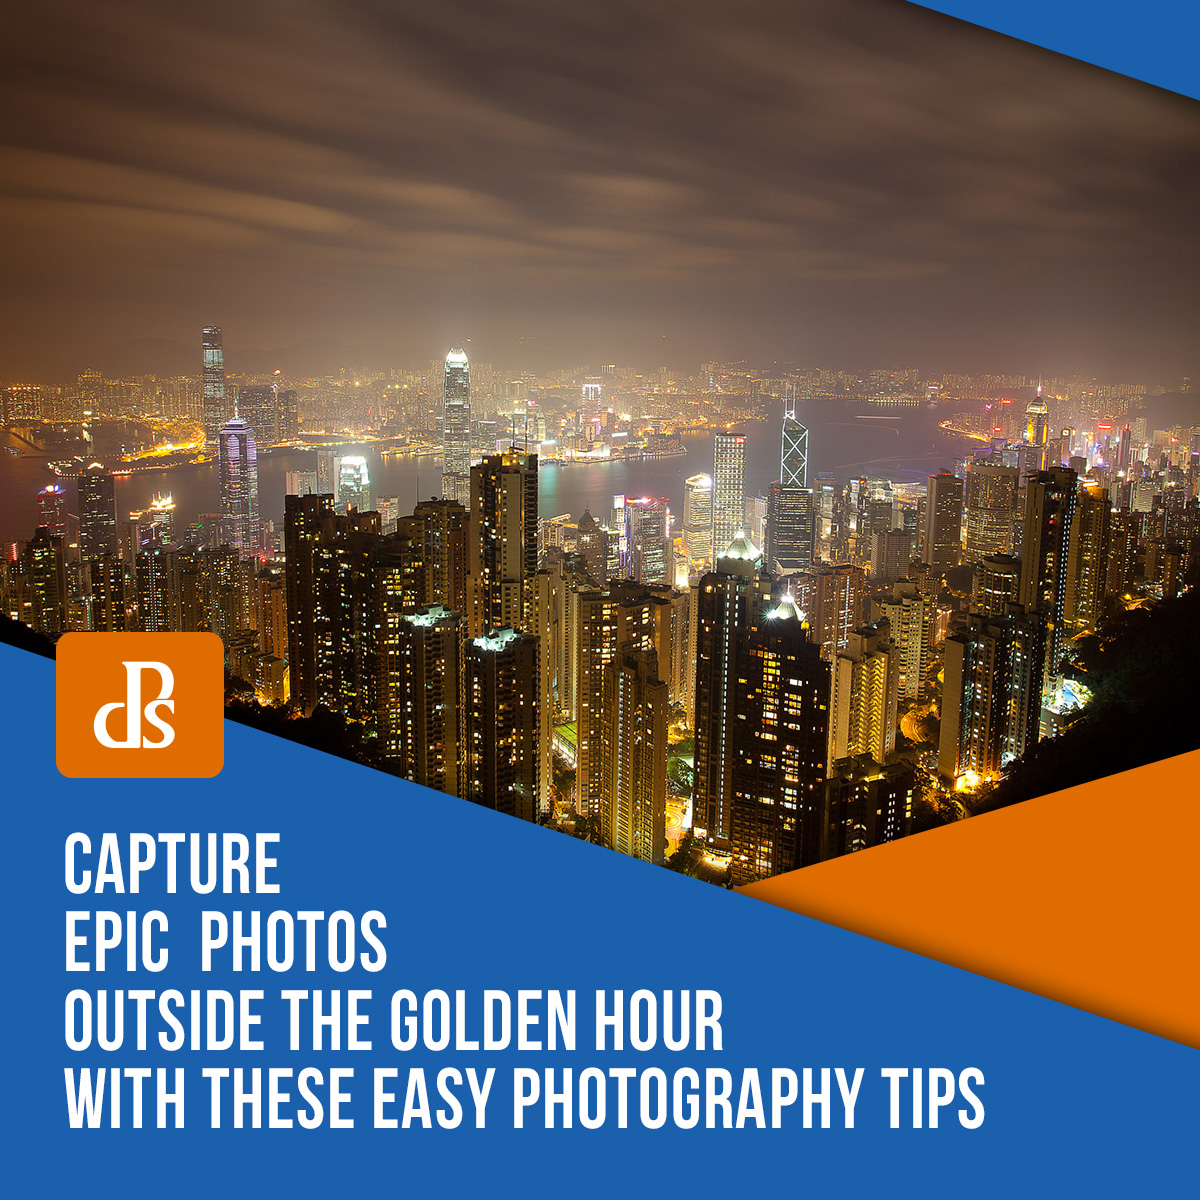 Capture Epic Photos Outside the Golden Hour with these Easy Photography Tips